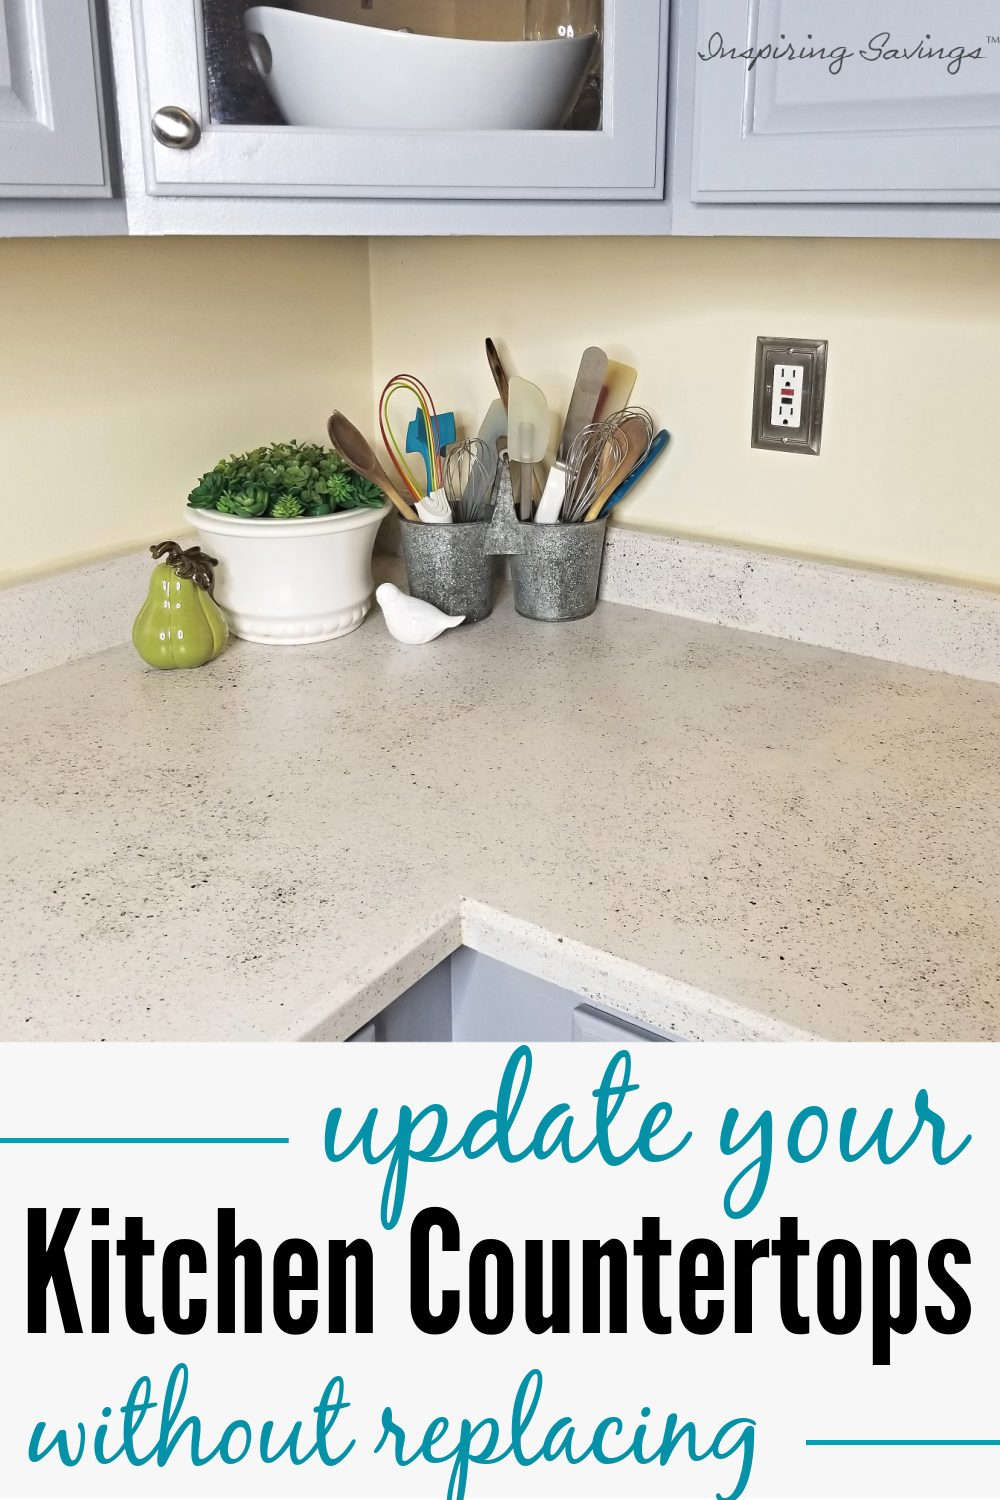 Updated Kitchen Countertops after using spreadstone finishing kit